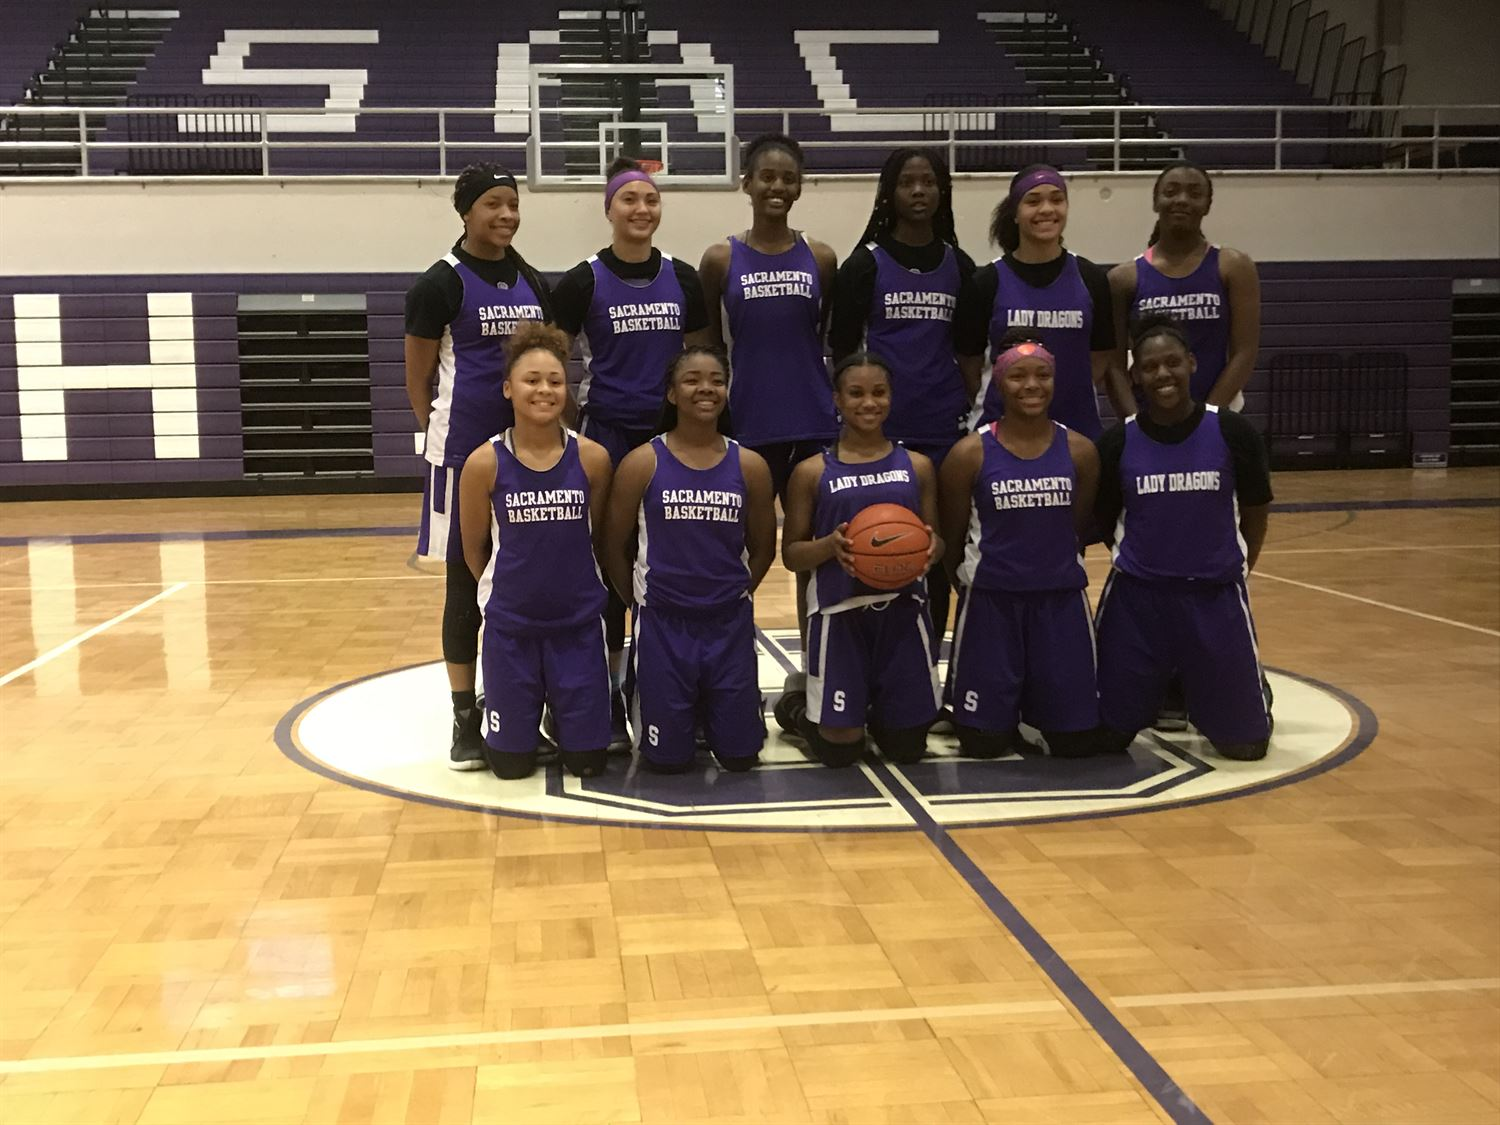 Sacramento High School - Girls' Varsity Basketball